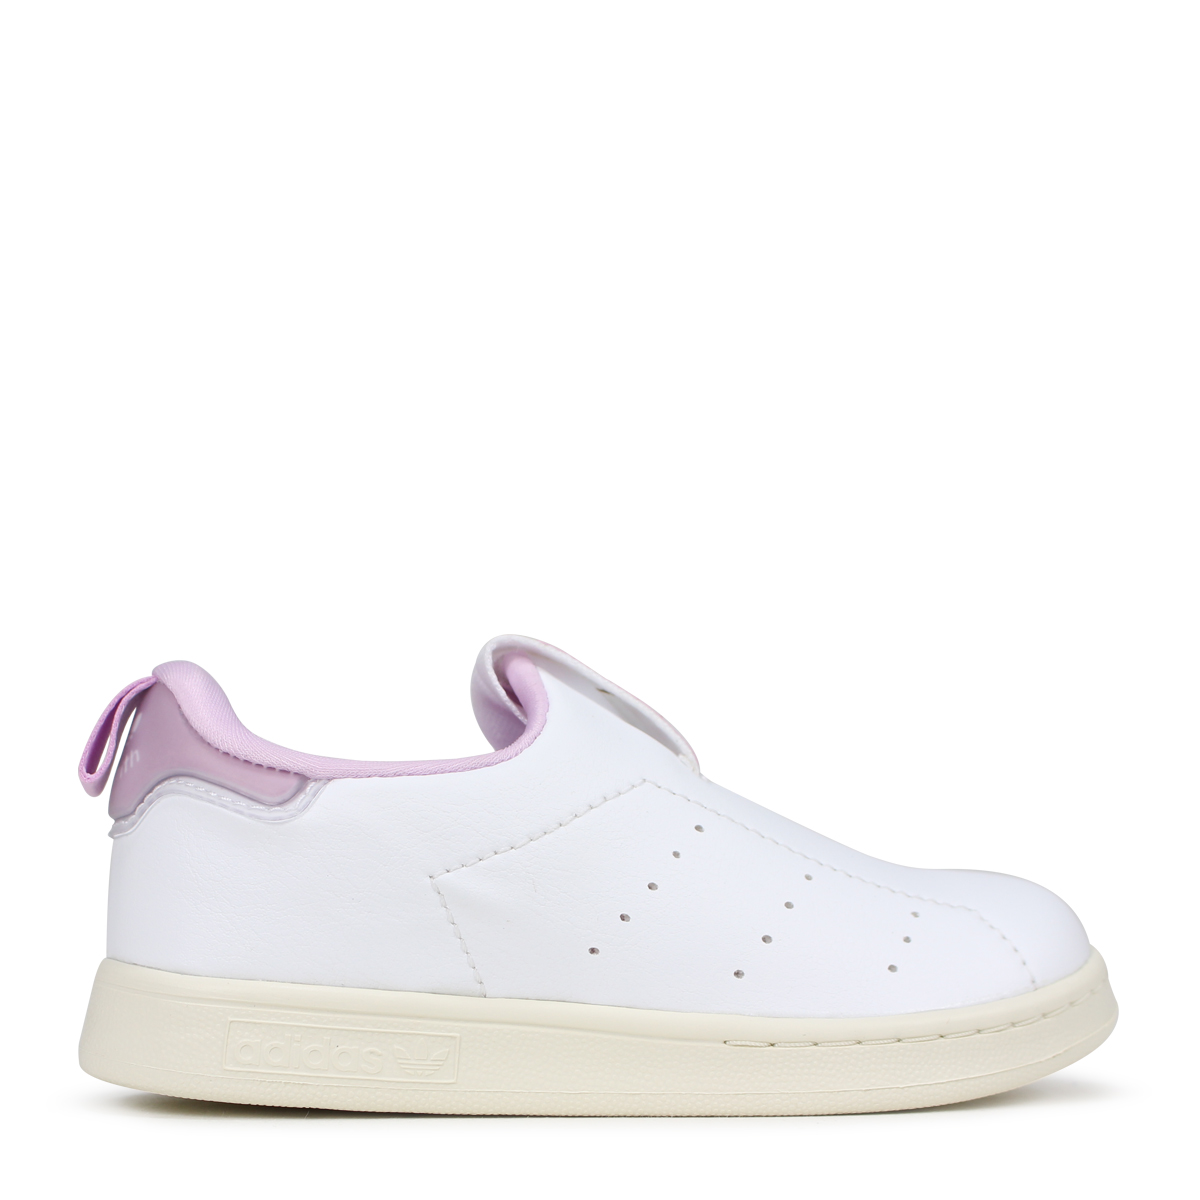 the latest 43f89 cb117 adidas Originals STAN SMITH 360 I Adidas originals Stan Smith kids baby  sneakers B37269 white  load planned Shinnyu load in reservation product  8 14 ...